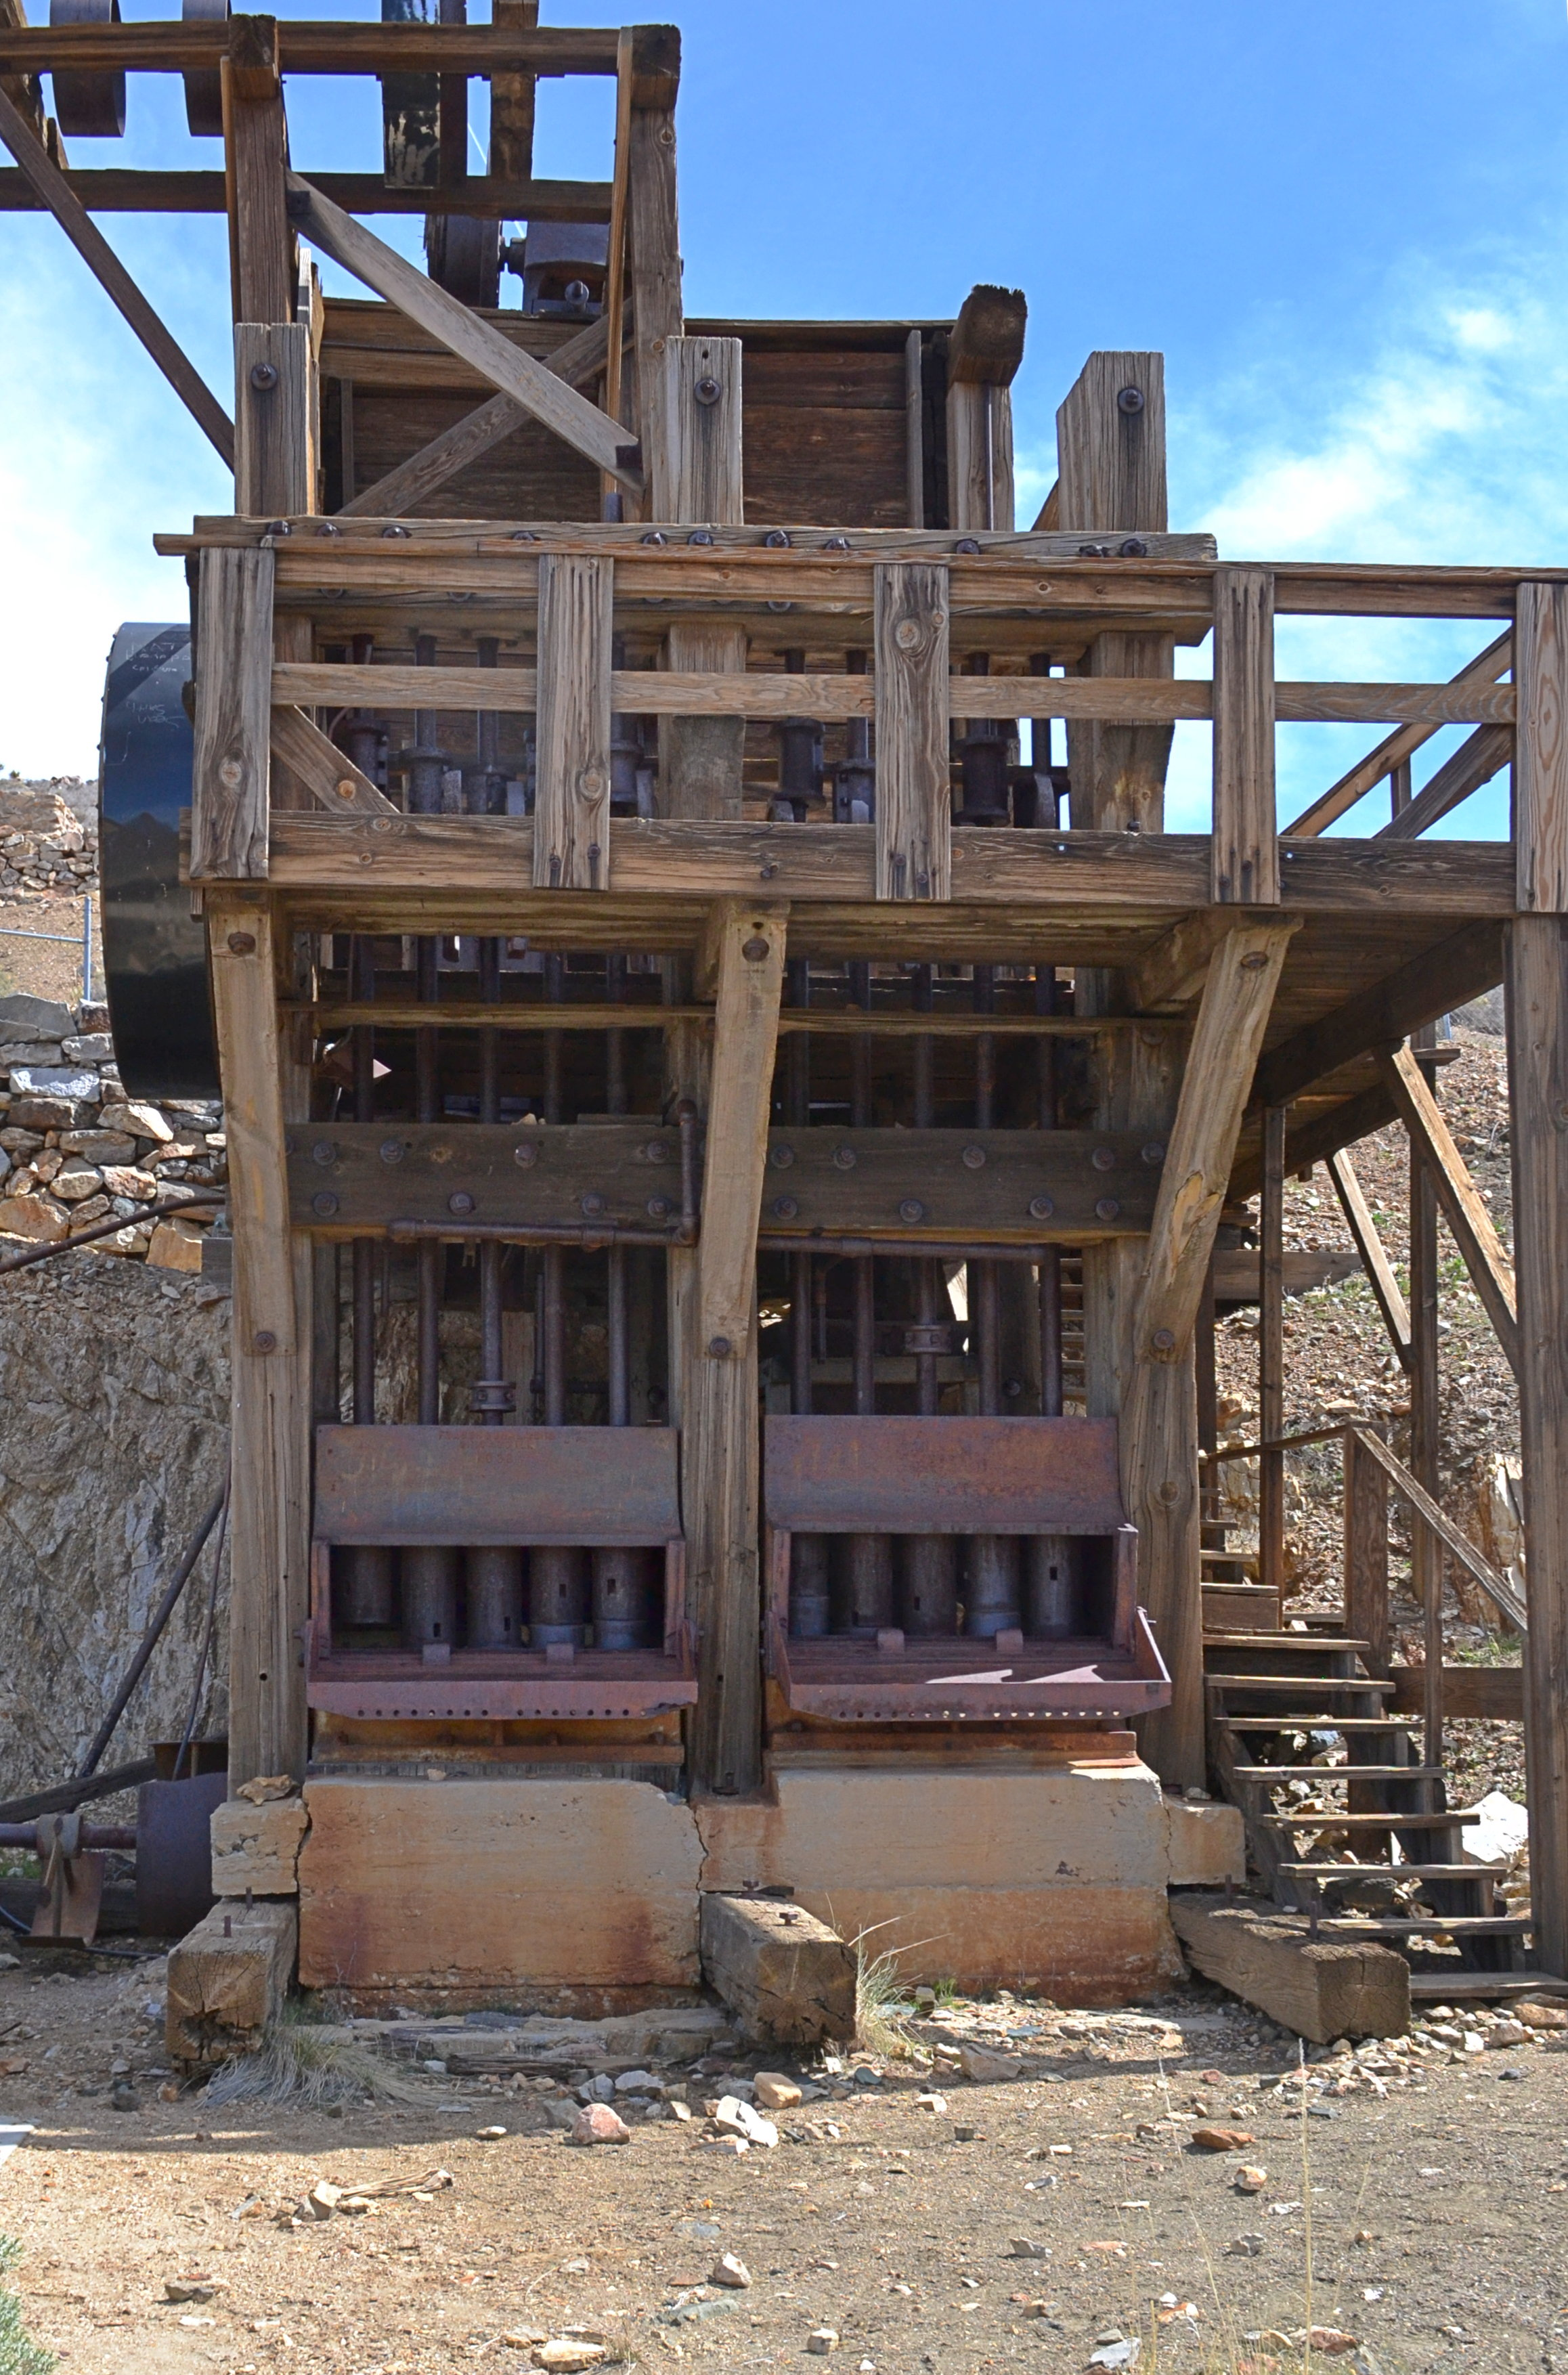 Stamp mill at the Lost Horse Mine